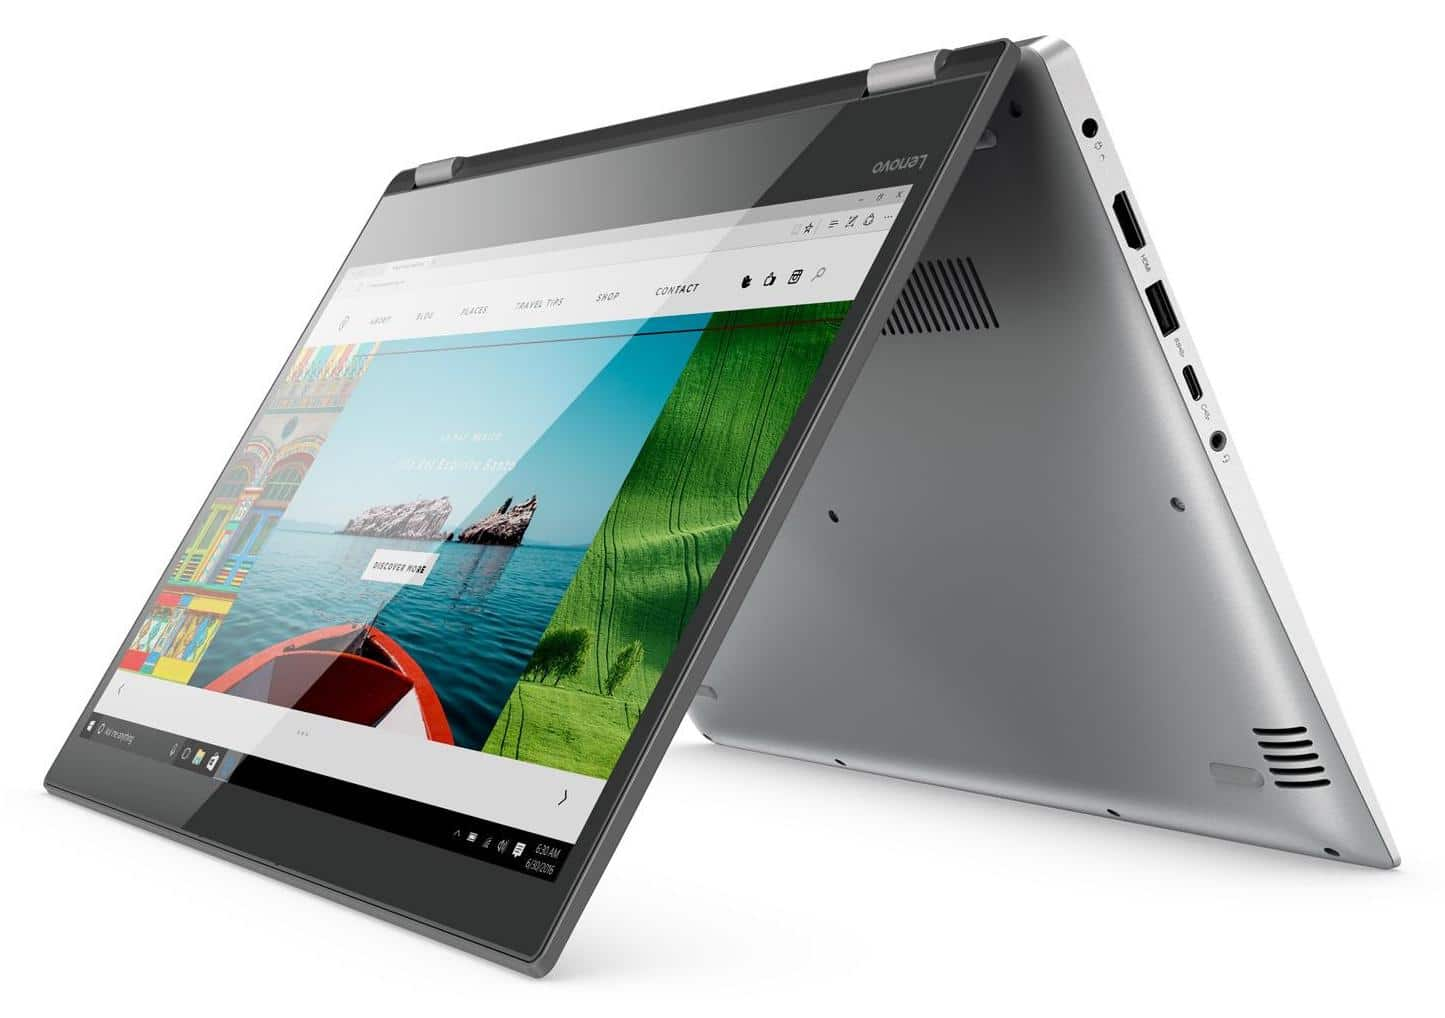 Lenovo Yoga 520-14IKB, ultrabook 14 pouces Tablette i3 Kaby SSD/HDD à 649€